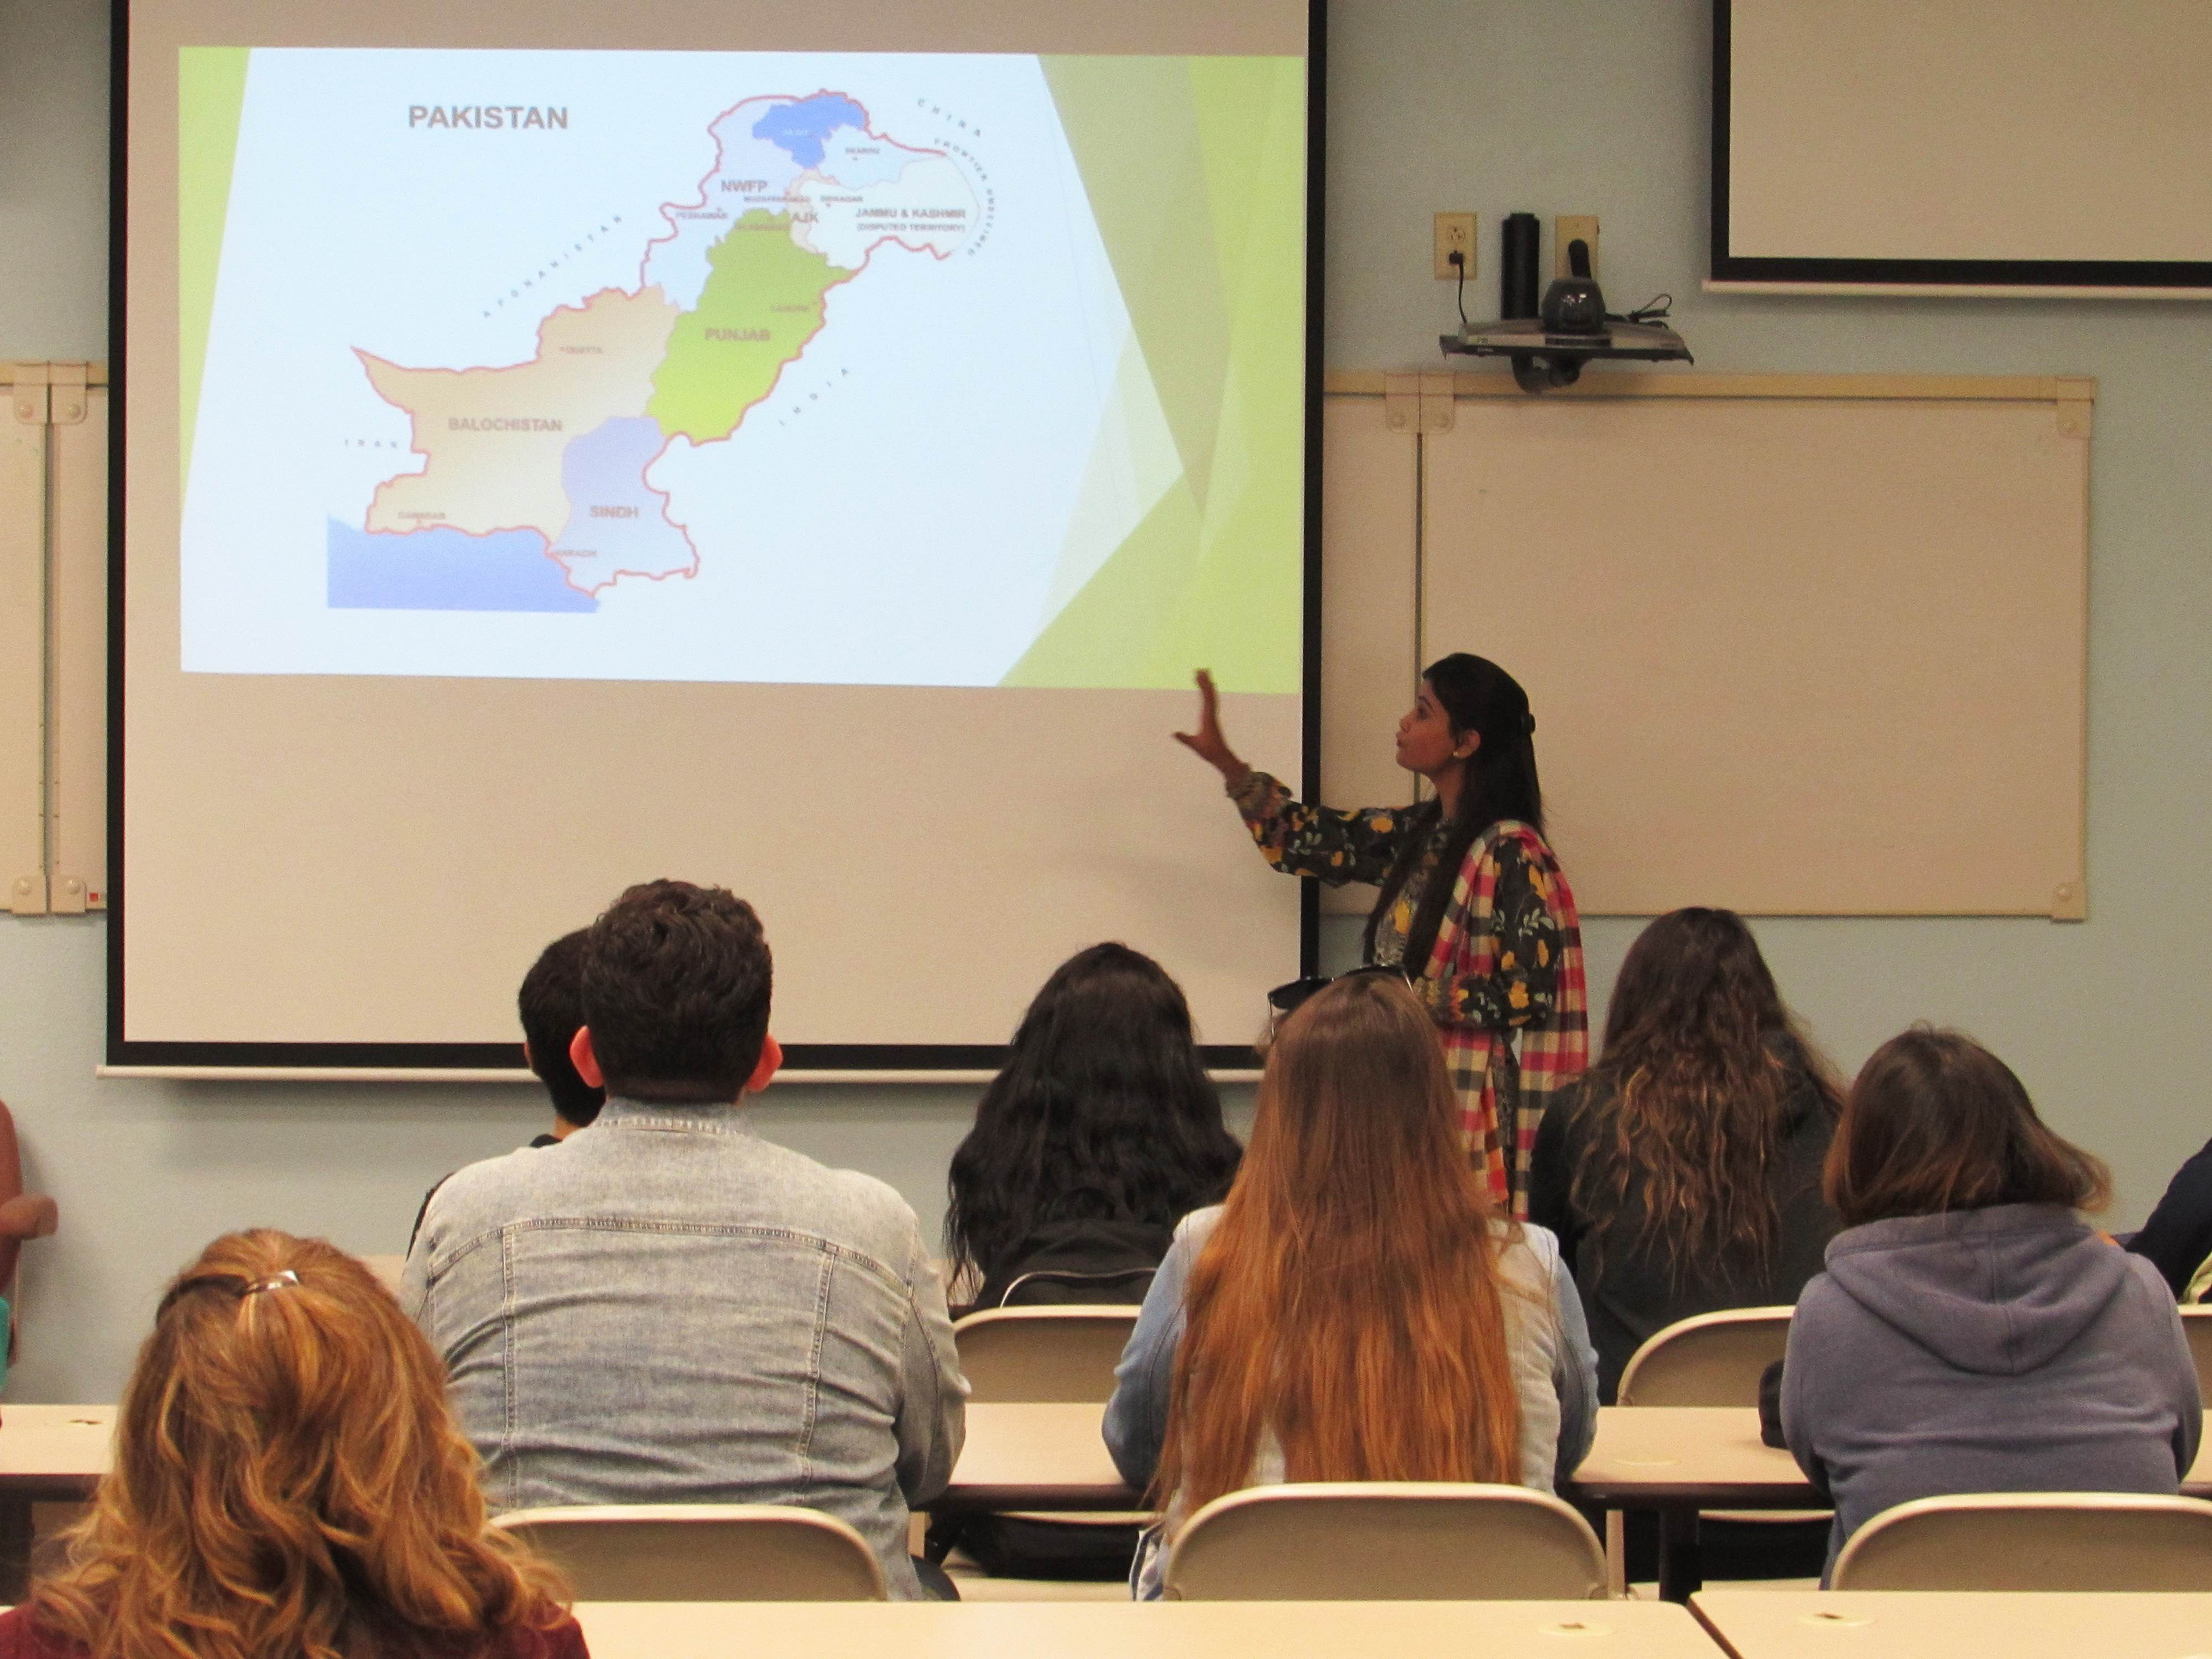 A student is presenting on Pakistan to a group of students